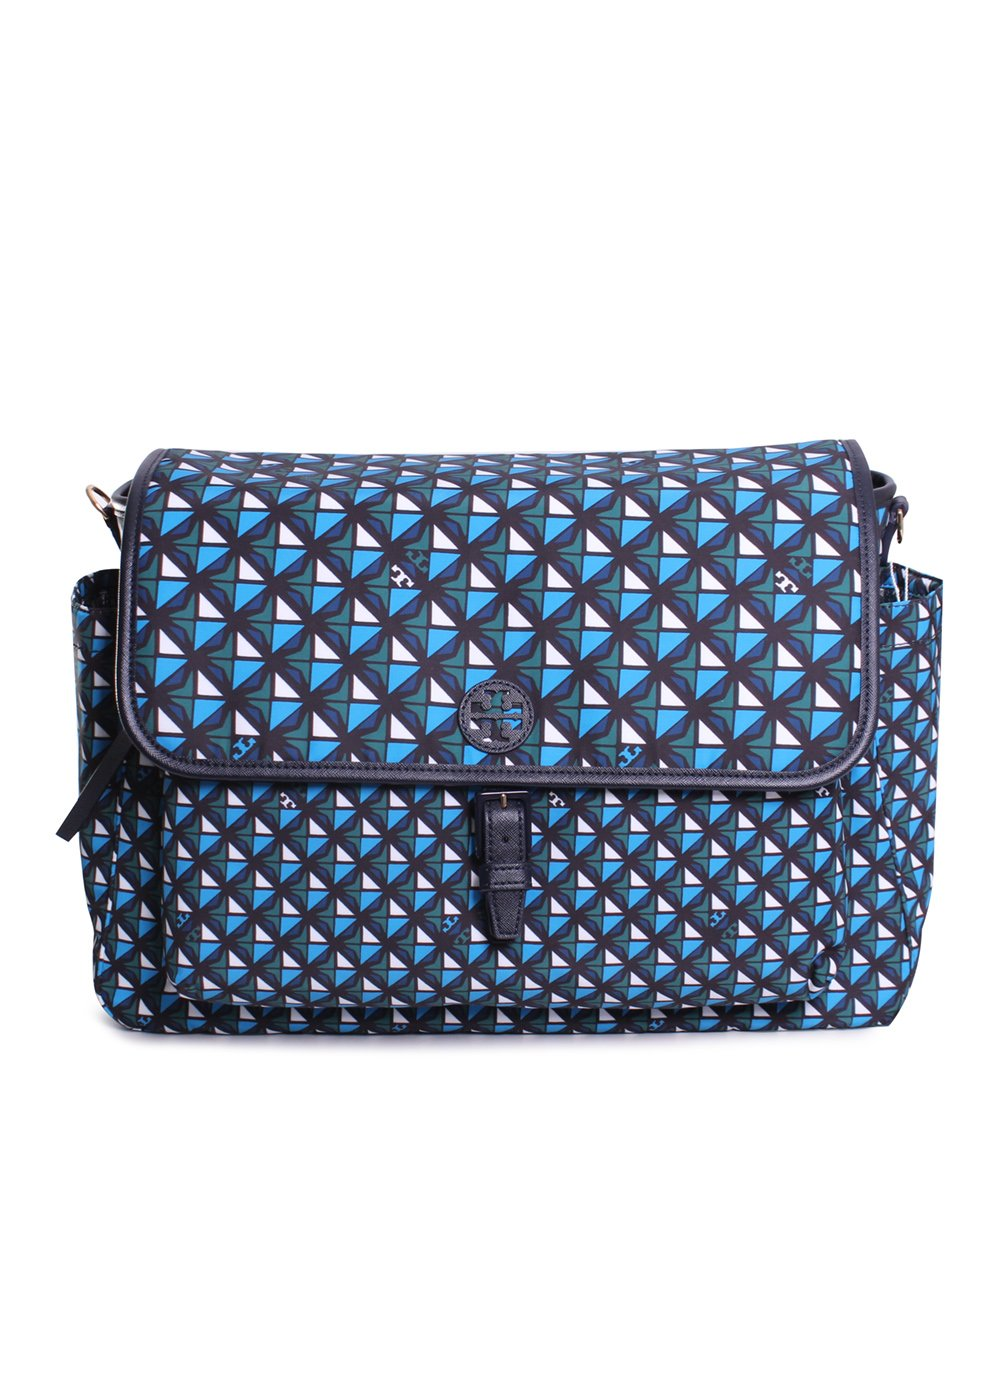 Tory Burch Scout Nylon Printed Messenger Baby Bag in Tory Navy Geo